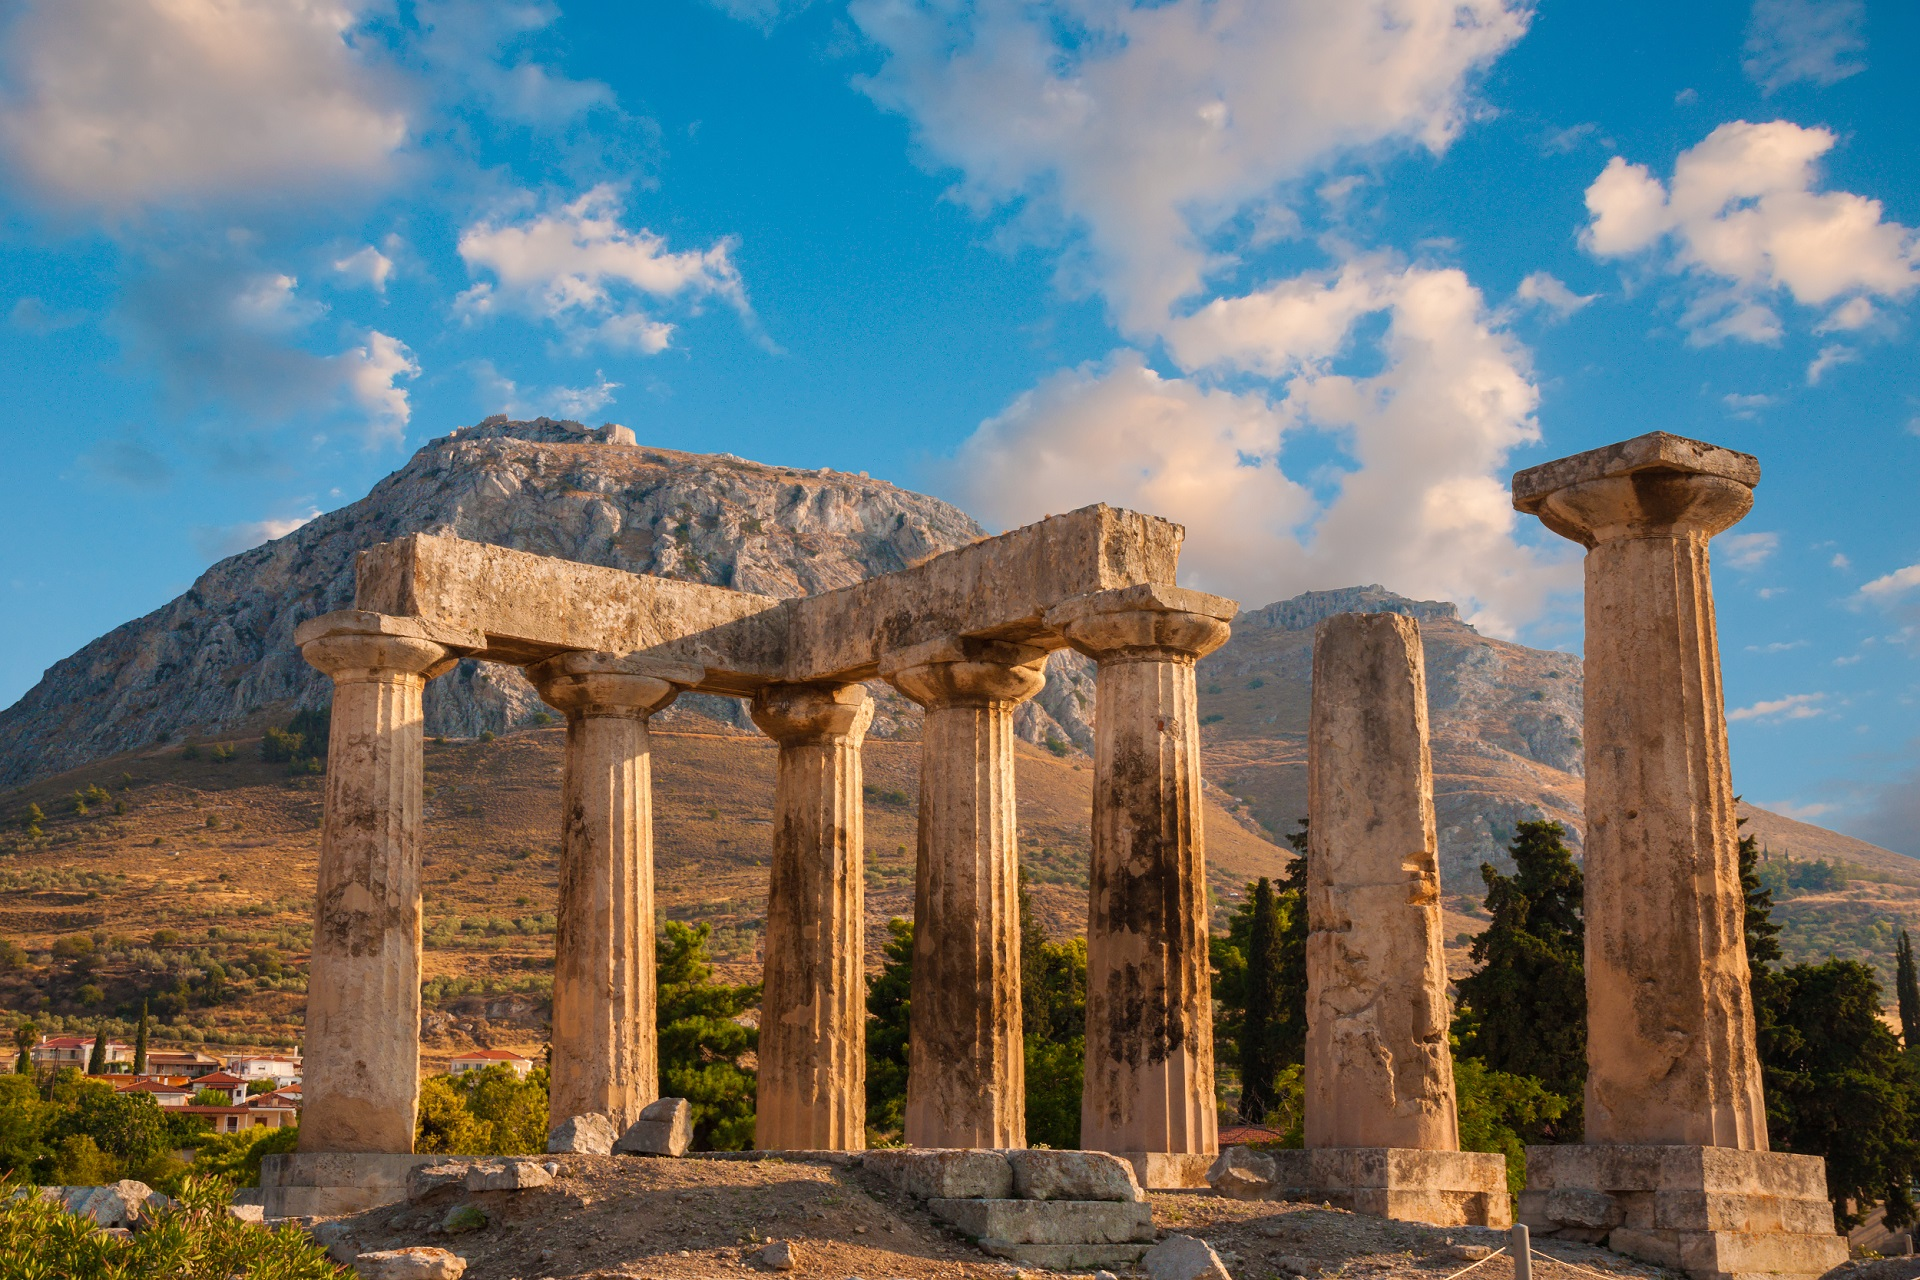 Ruins of Appollo temple with fortress at back in ancient Corinth, Greece